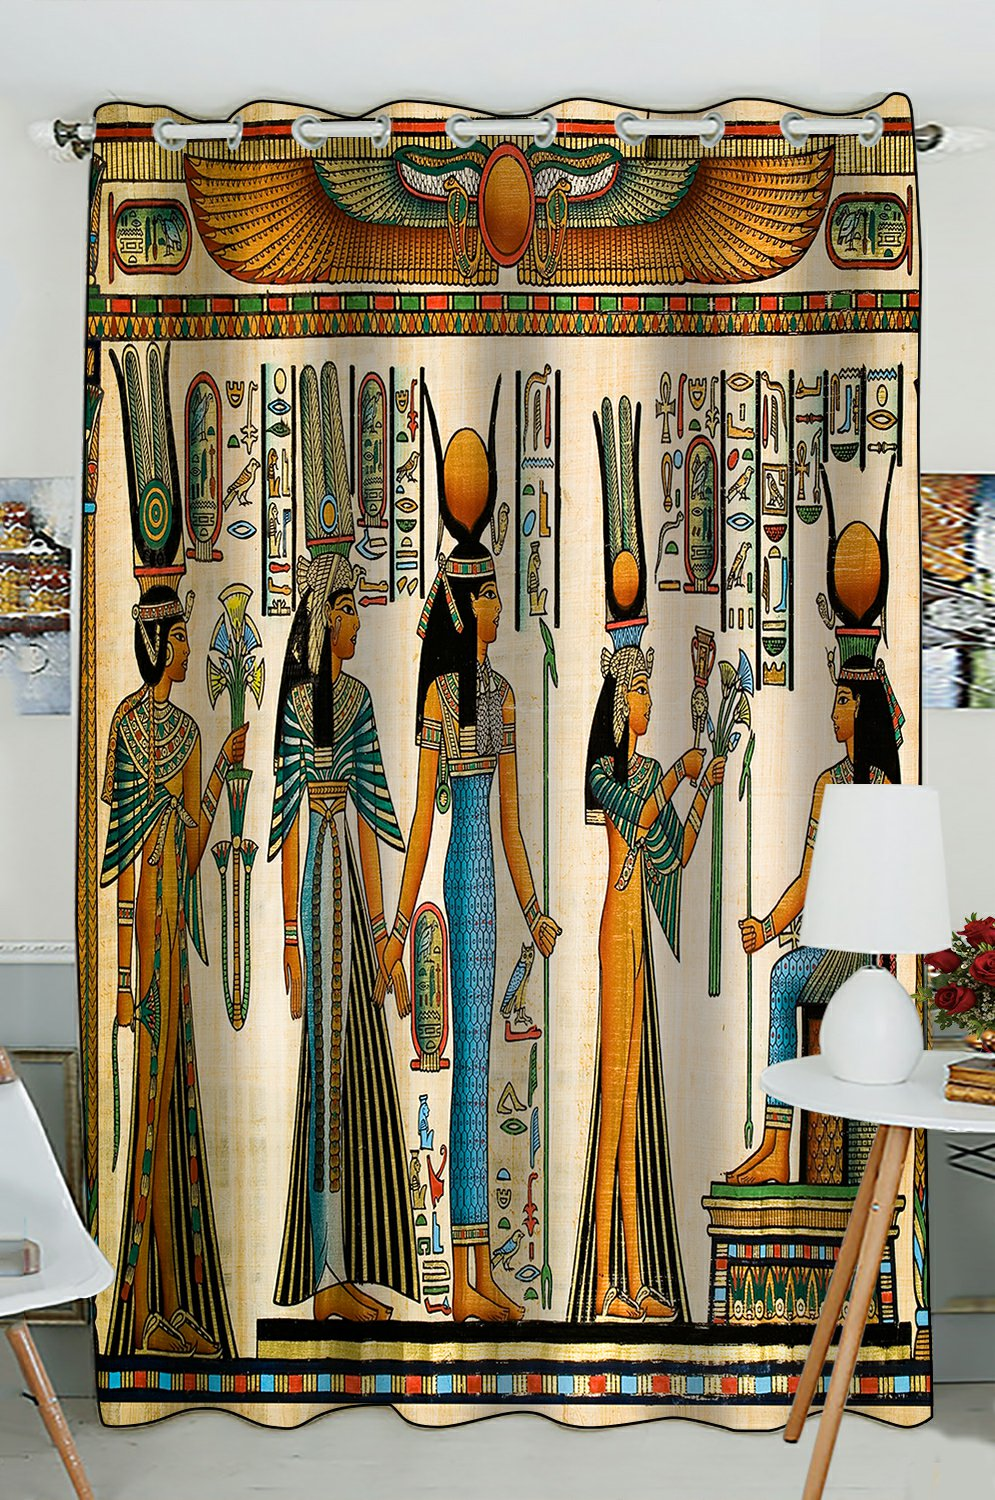 phfzk african design window curtain egyptian queen ancient window curtain blackout curtain for bedroom living room kitchen room 52x84 inches one